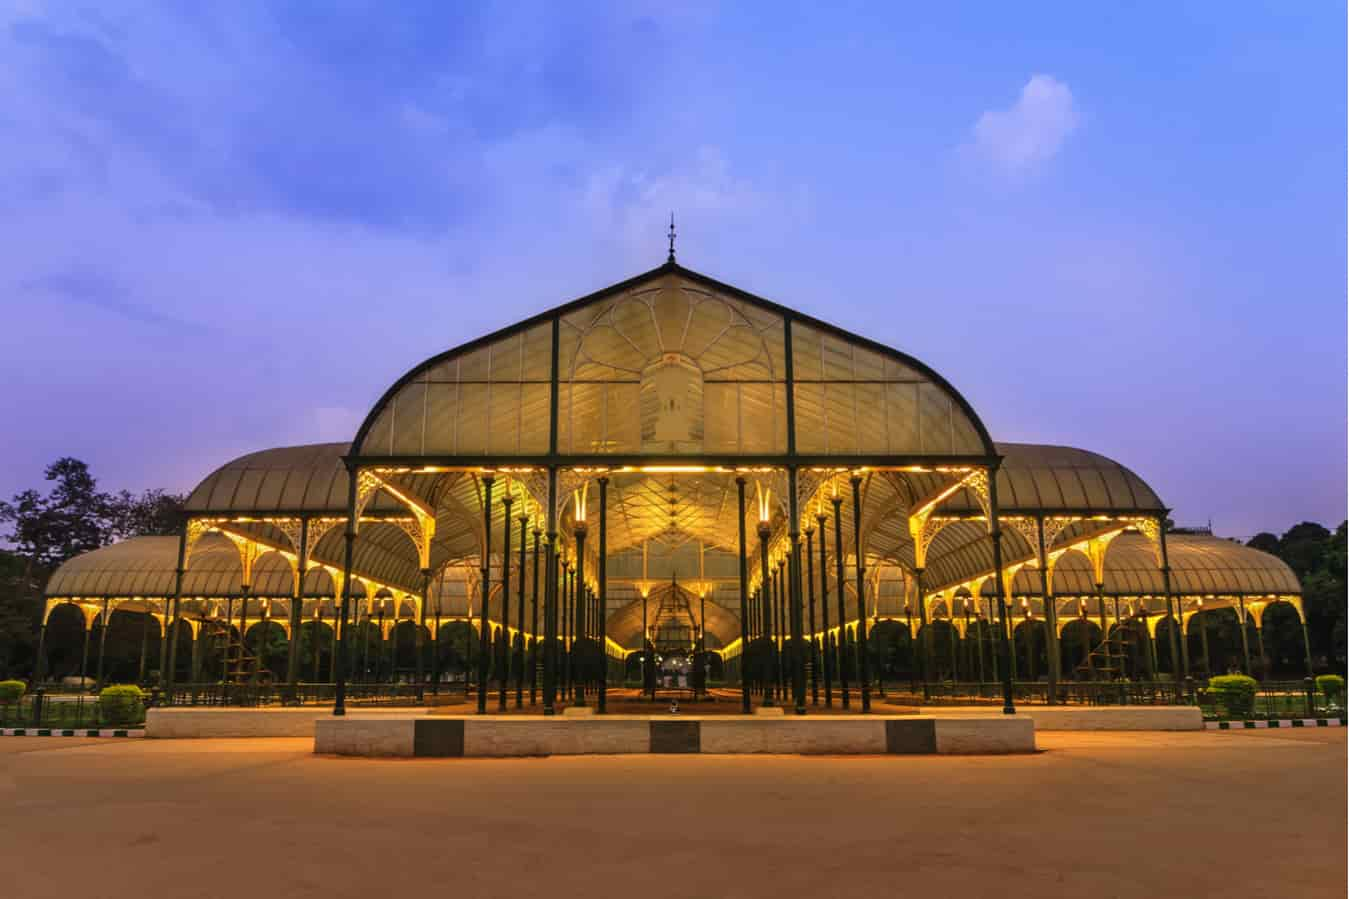 The Glass House at Lal Bagh is a great place to visit